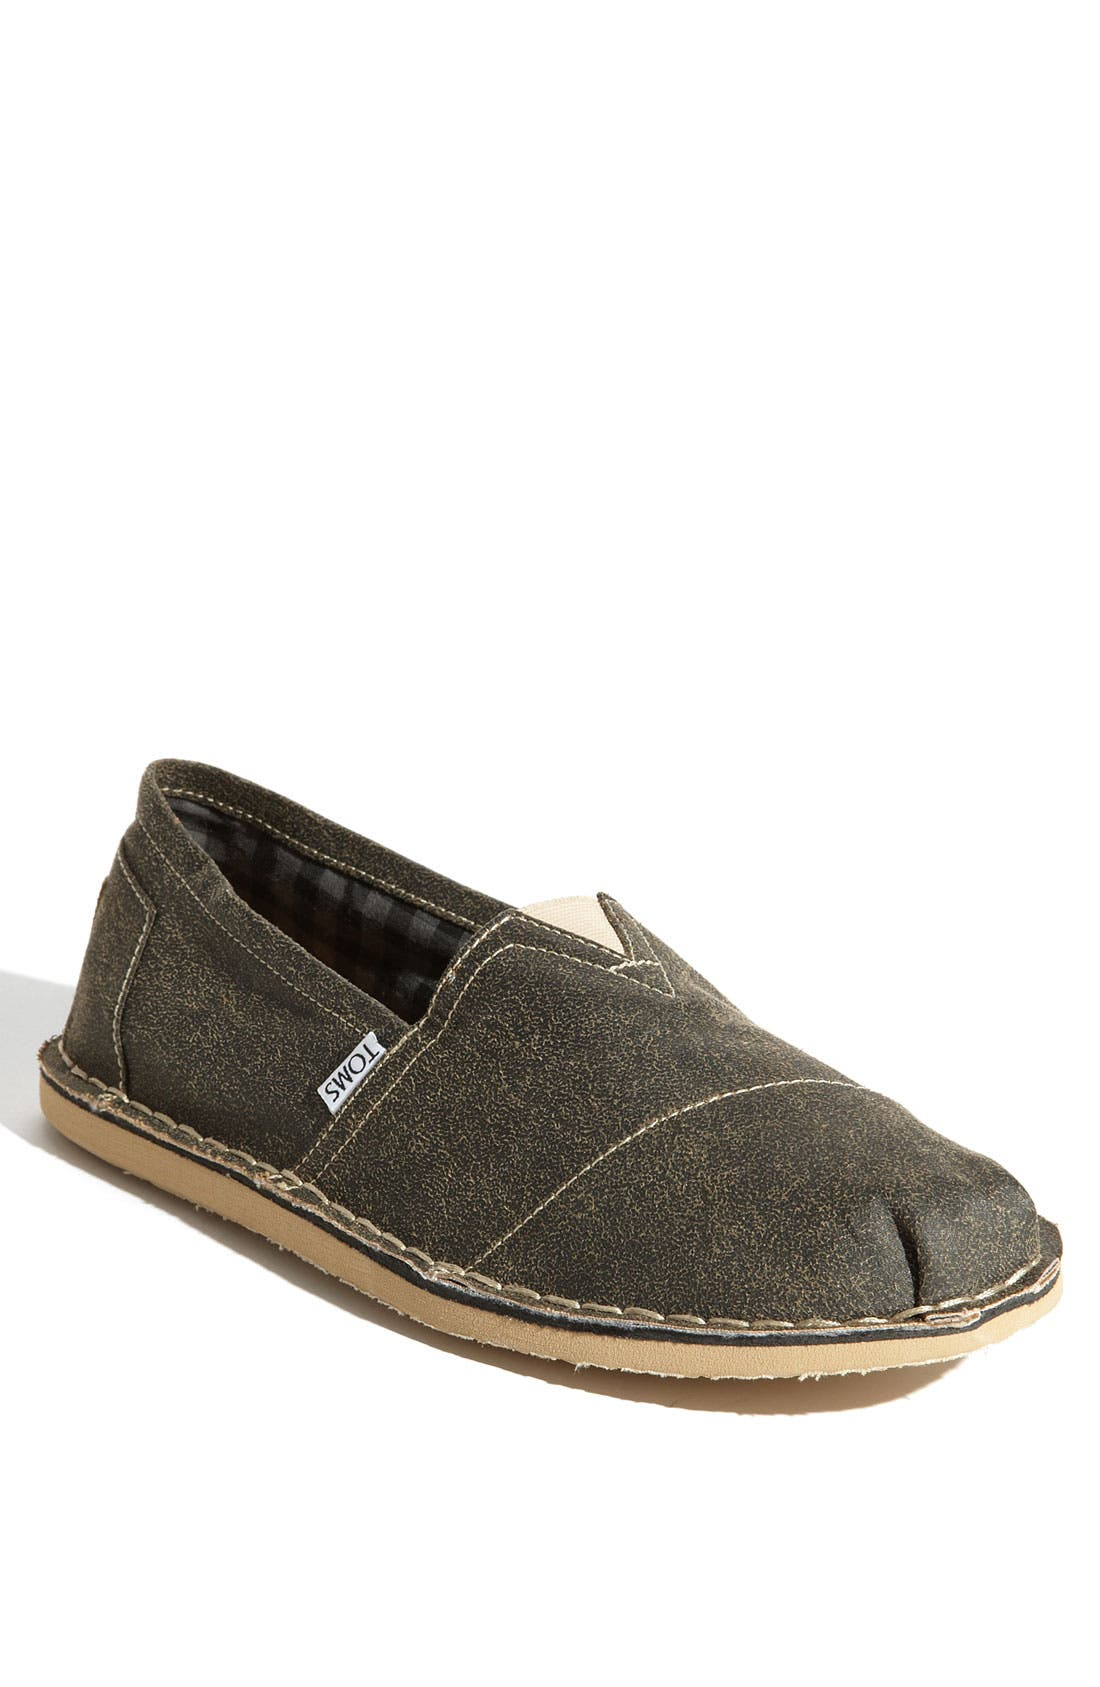 Alternate Image 1 Selected - TOMS 'Stitchout - Heritage' Slip-On (Men)